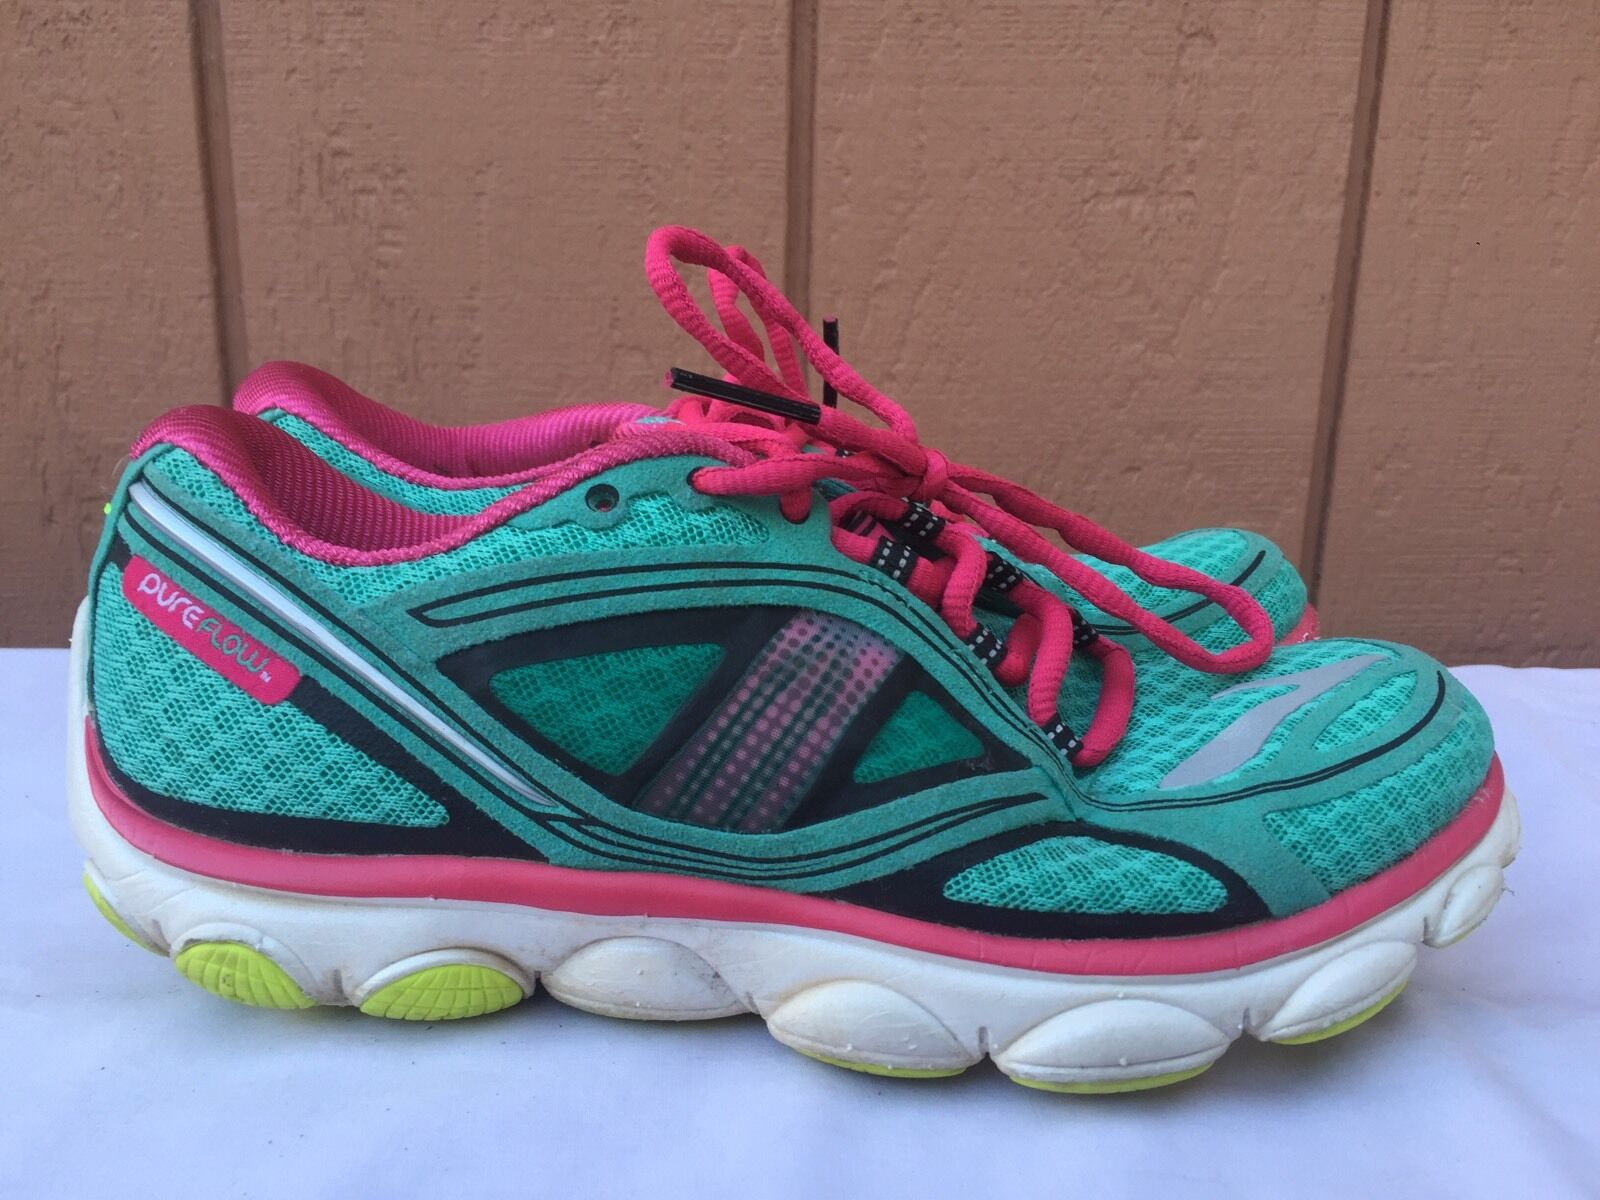 EUC Brooks Pure Flow 3 Women's Running Shoes Size US 6 M (B)